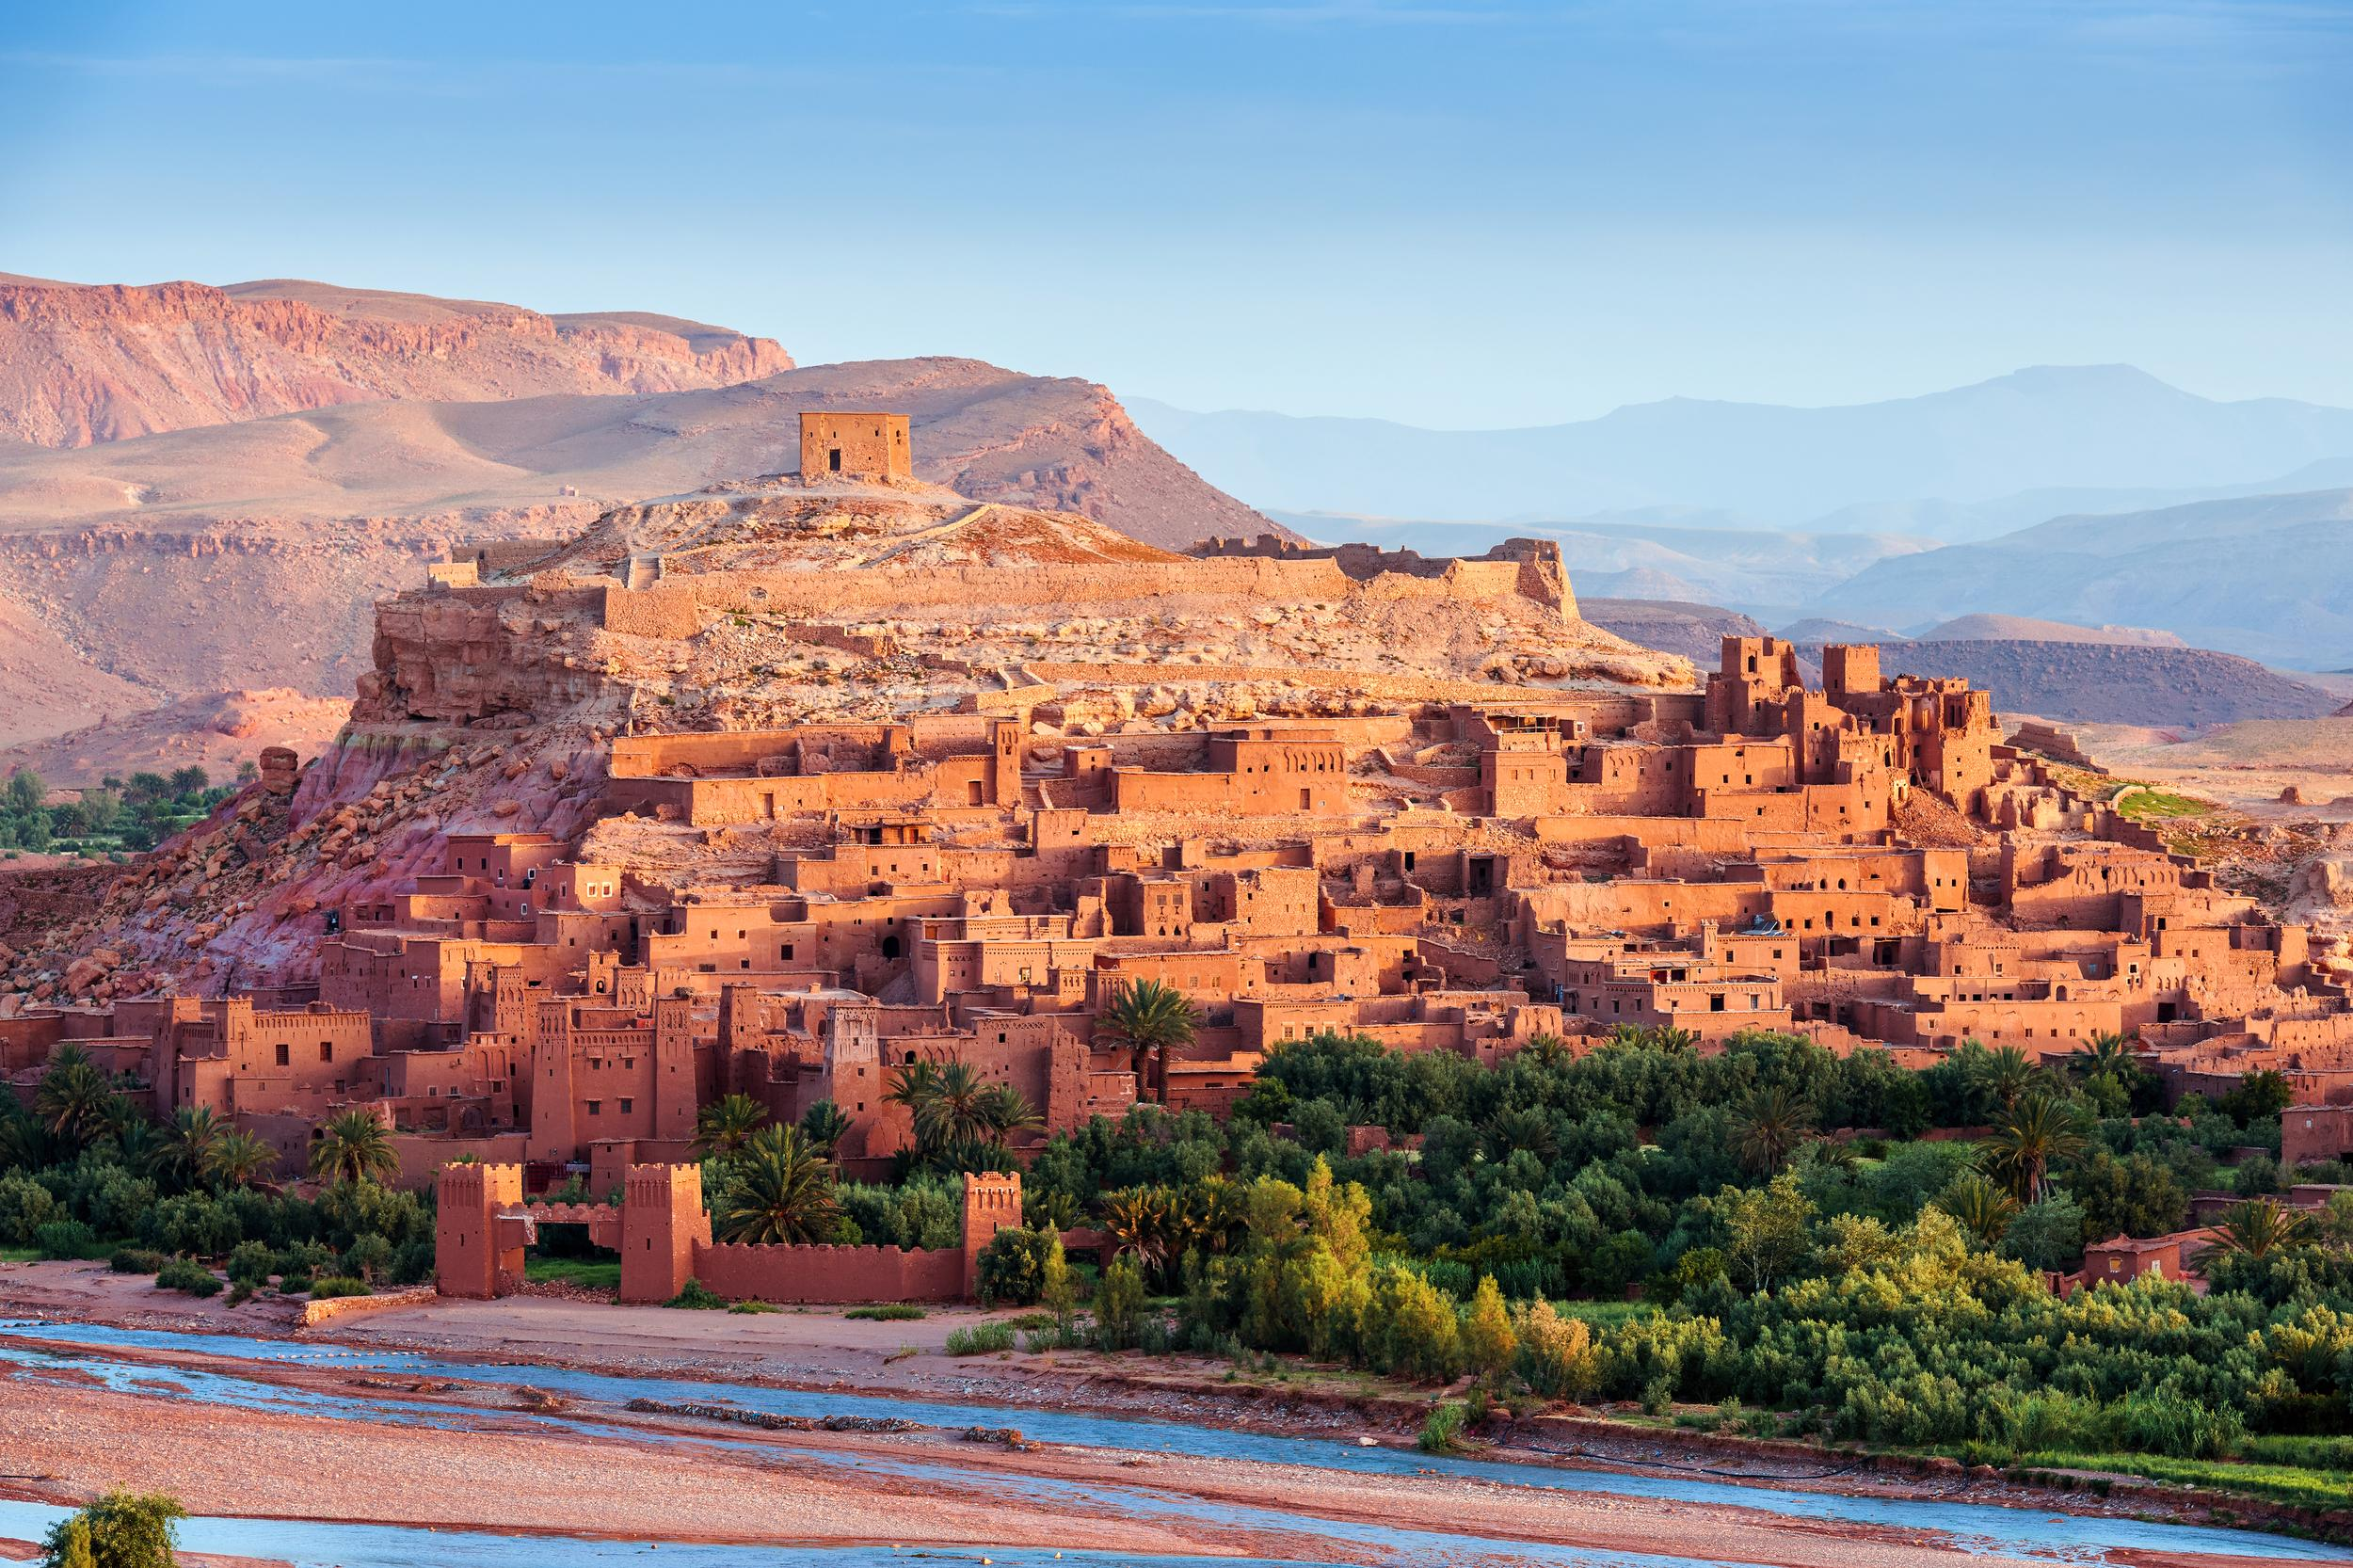 """<p><strong>GOT location</strong>: Yunkai and Pentos</p>  <p><strong>Real life location</strong>: Ait Benhaddou, Morocco</p>  <p>The Breaker of Chains freed the city of Yunkai in season three,which is really located in Morocco. This location also served as a filming spot for Pentos.</p>  <p><a href=""""https://fave.co/2PbpcD1""""><strong>Book your trip.</strong></a></p>"""